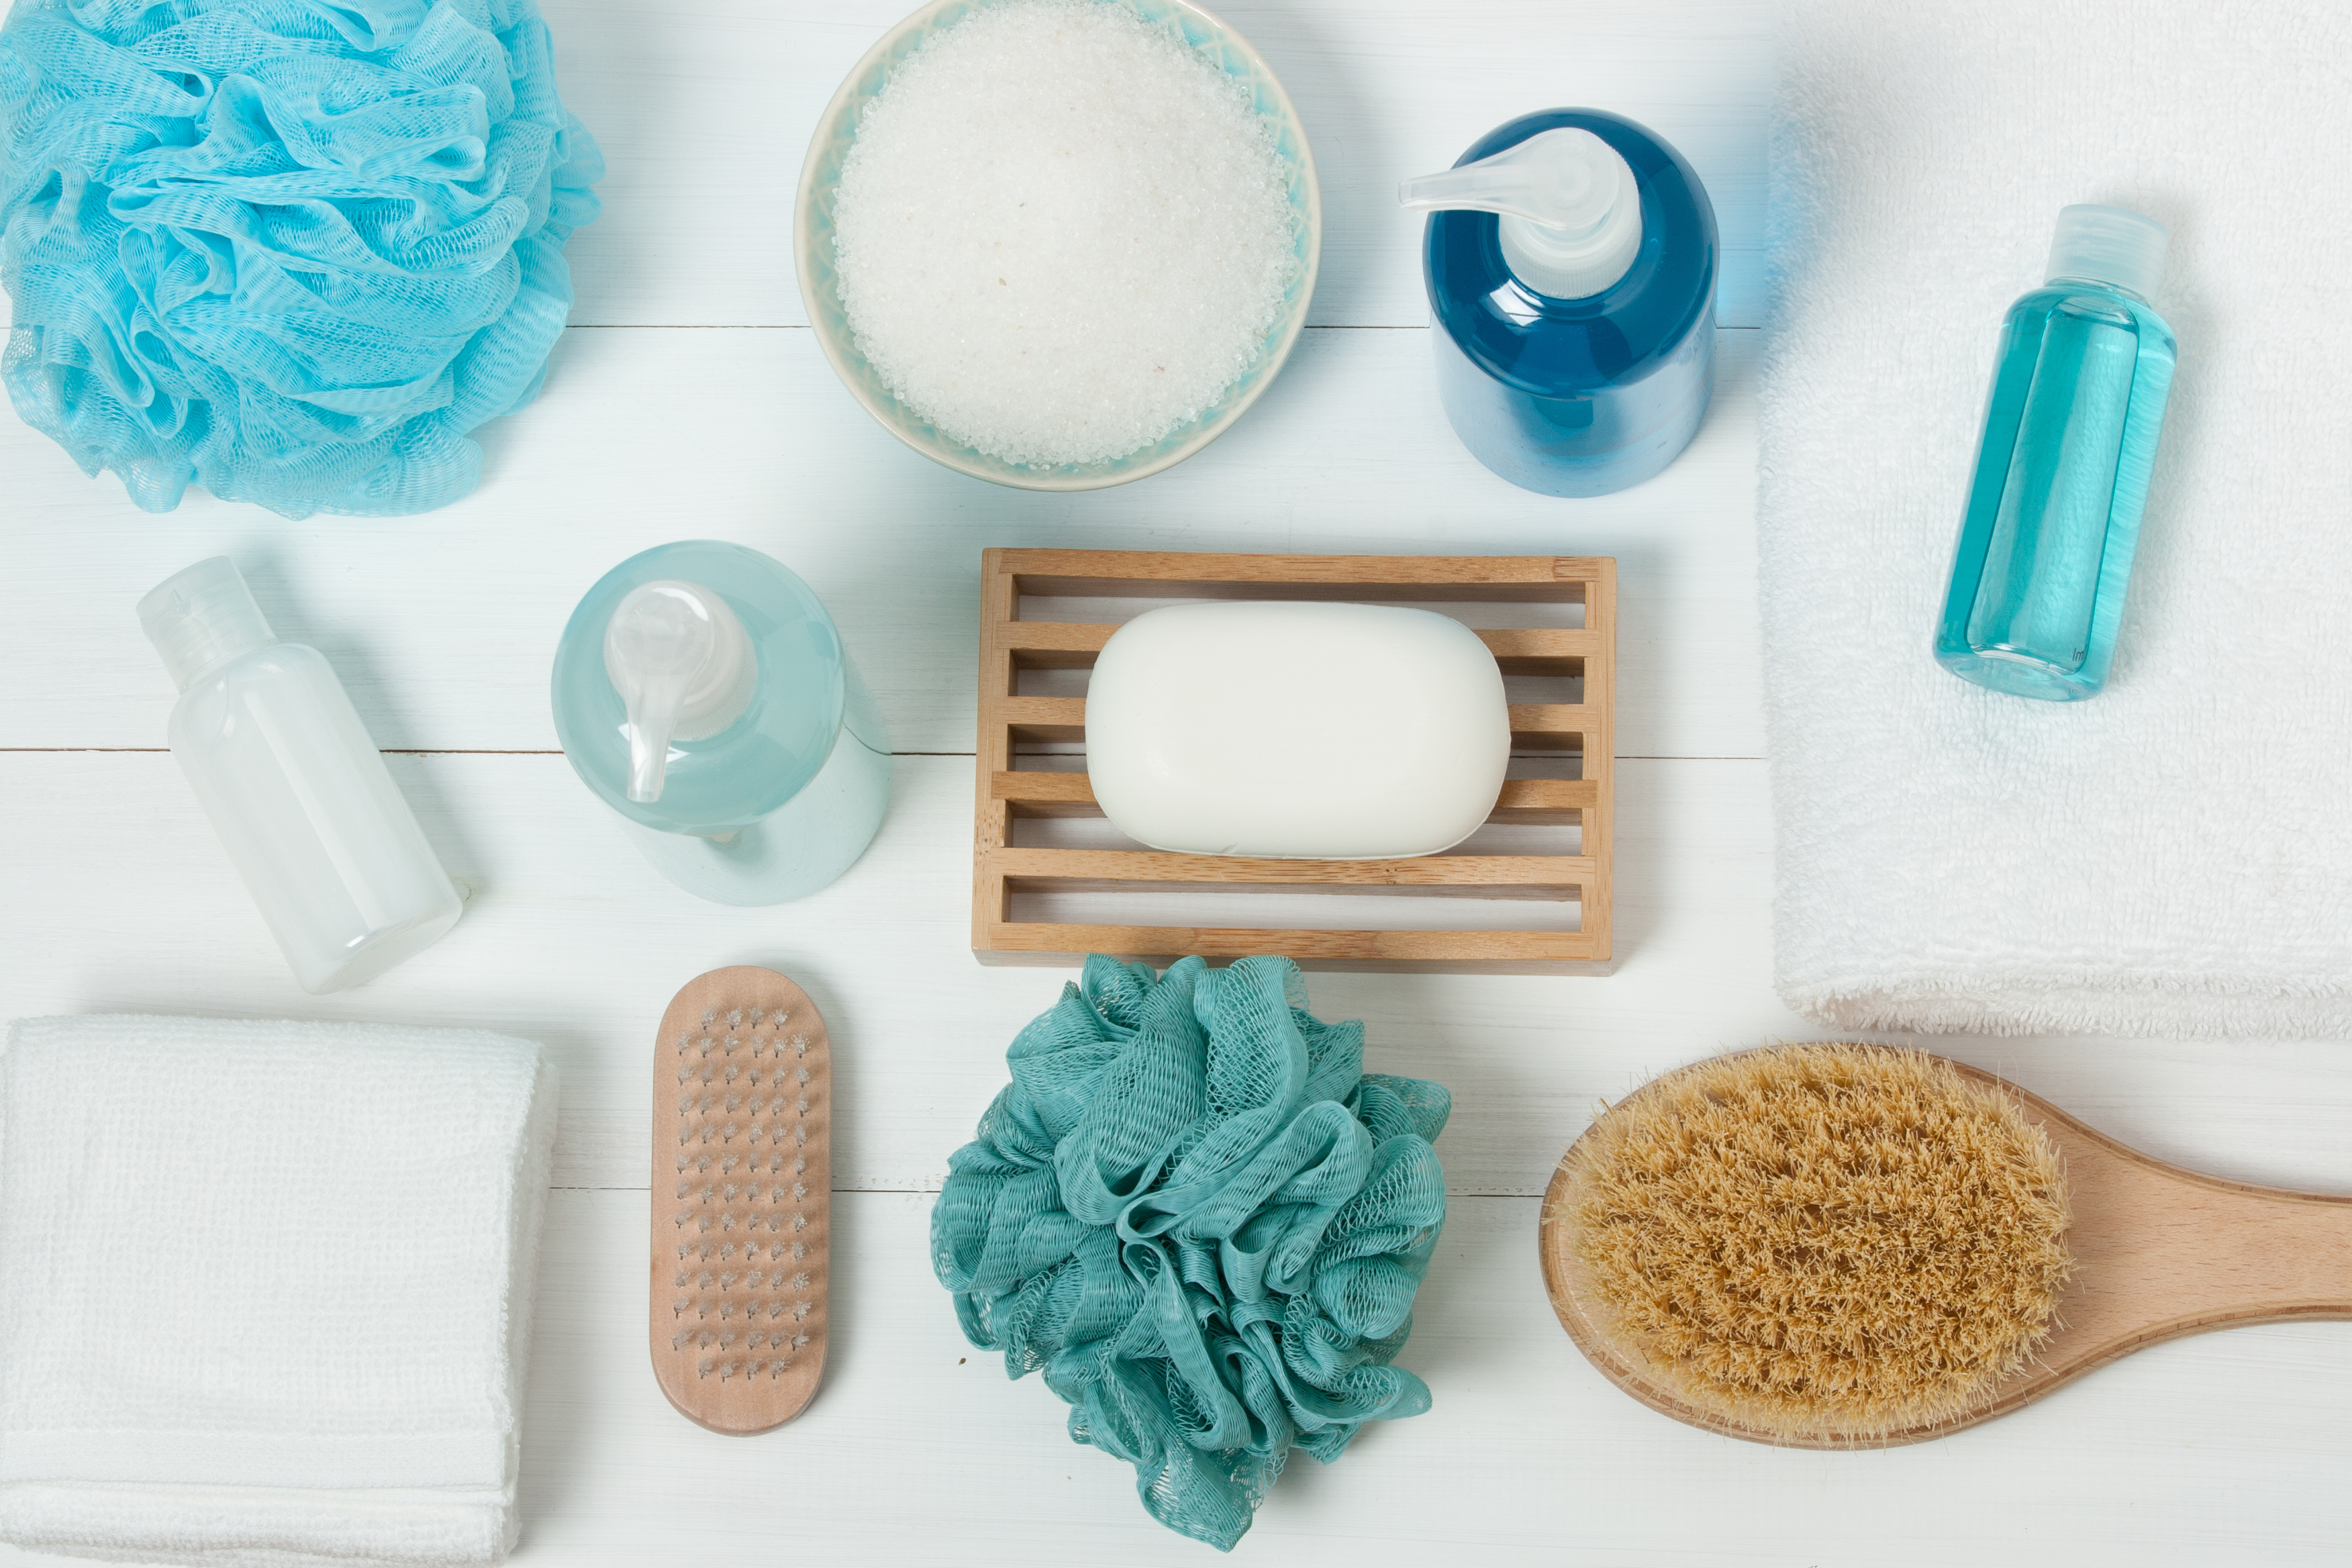 a photo of a spa kit with shampoo, soap bar and liquid shower gel